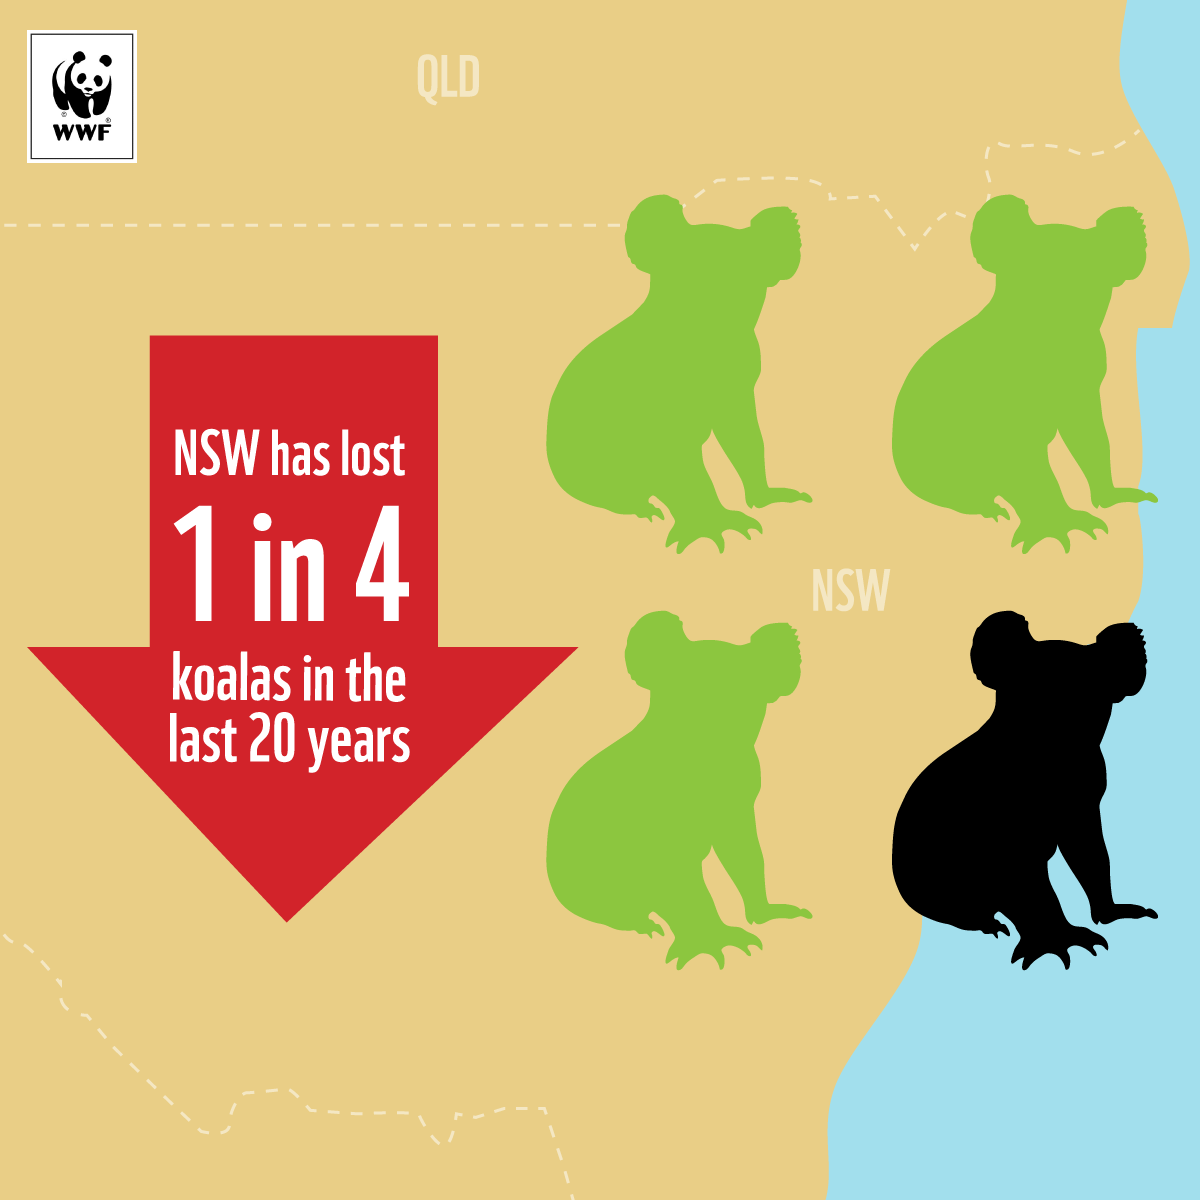 NSW-Koala-Map-Cropped.png